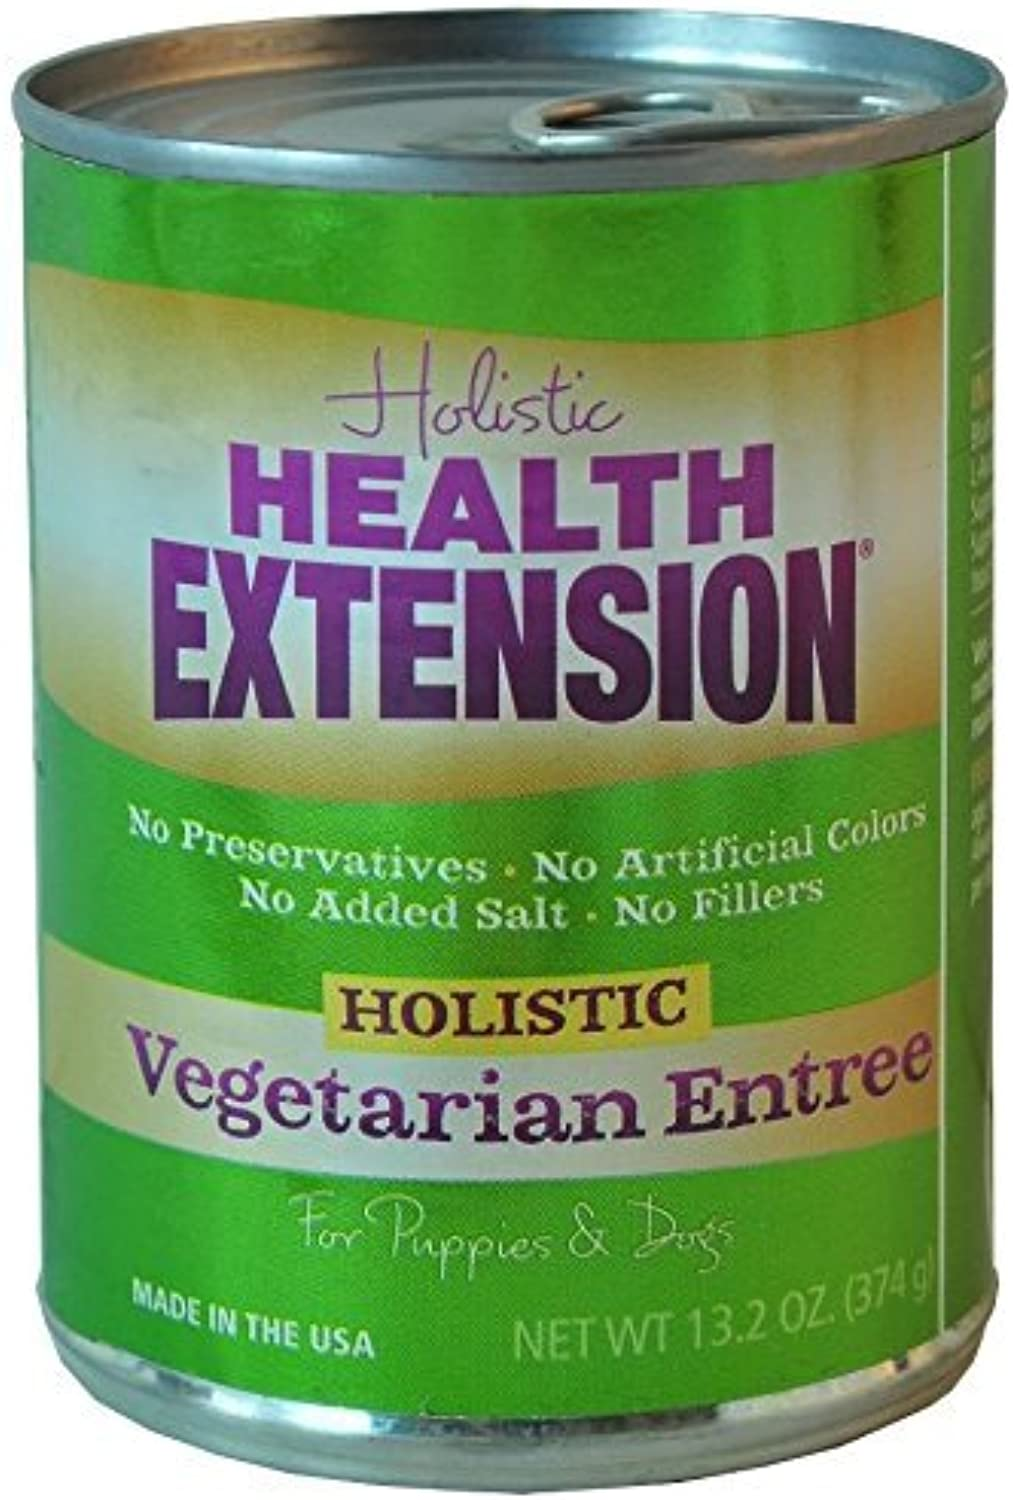 Health Extension Holistic Vegetarian Entree Canned Dog Food